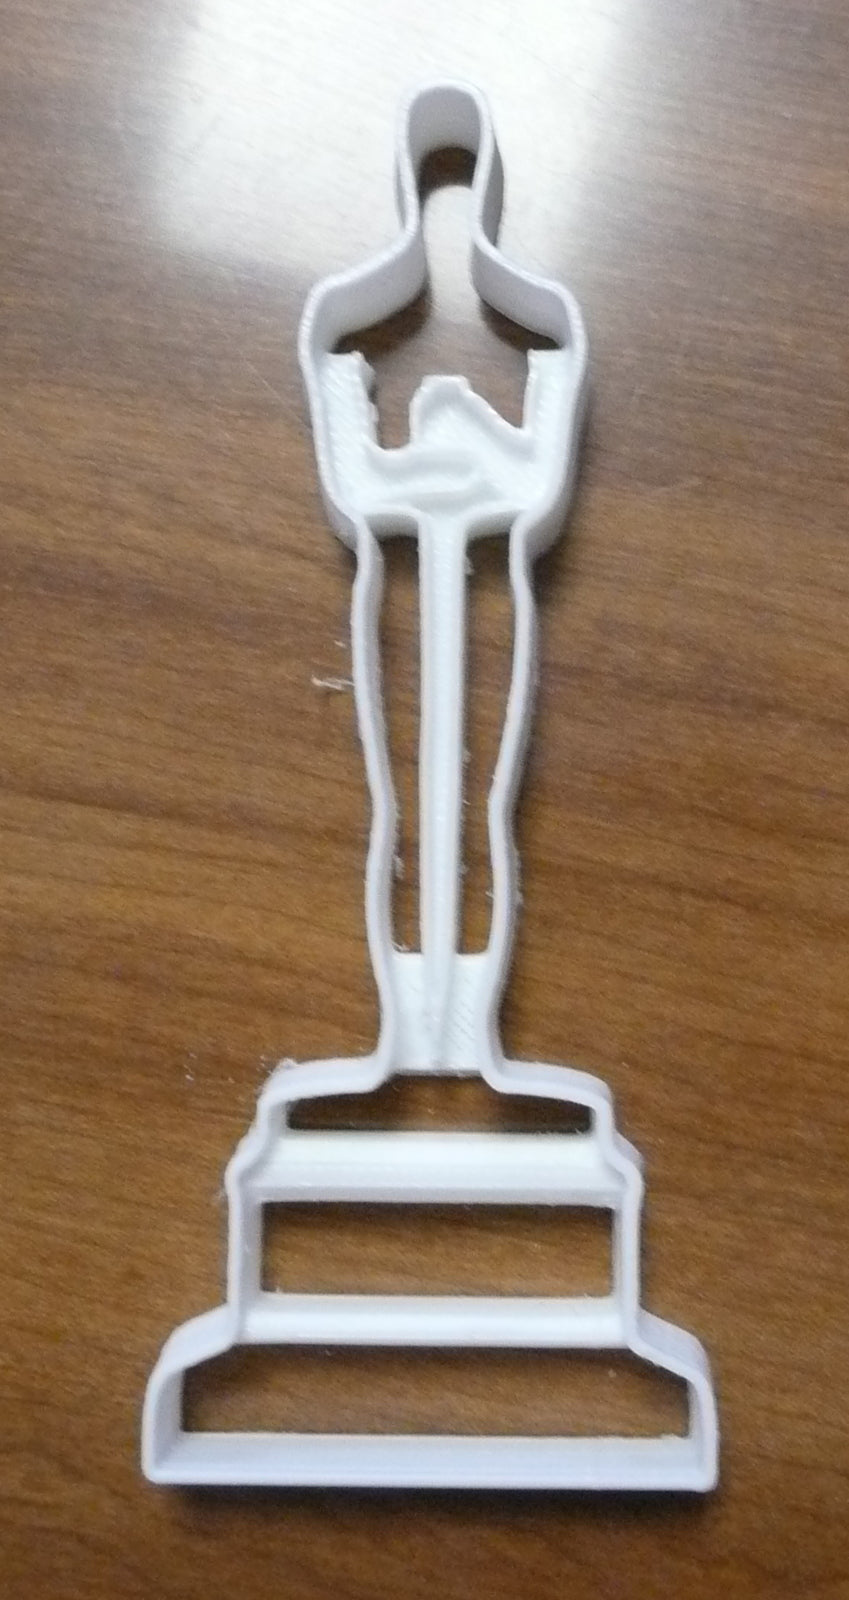 Oscar Academy Award Statue Film Motion Picture Red Carpet Special Occasion Cookie Cutter Baking Tool Made in USA PR453